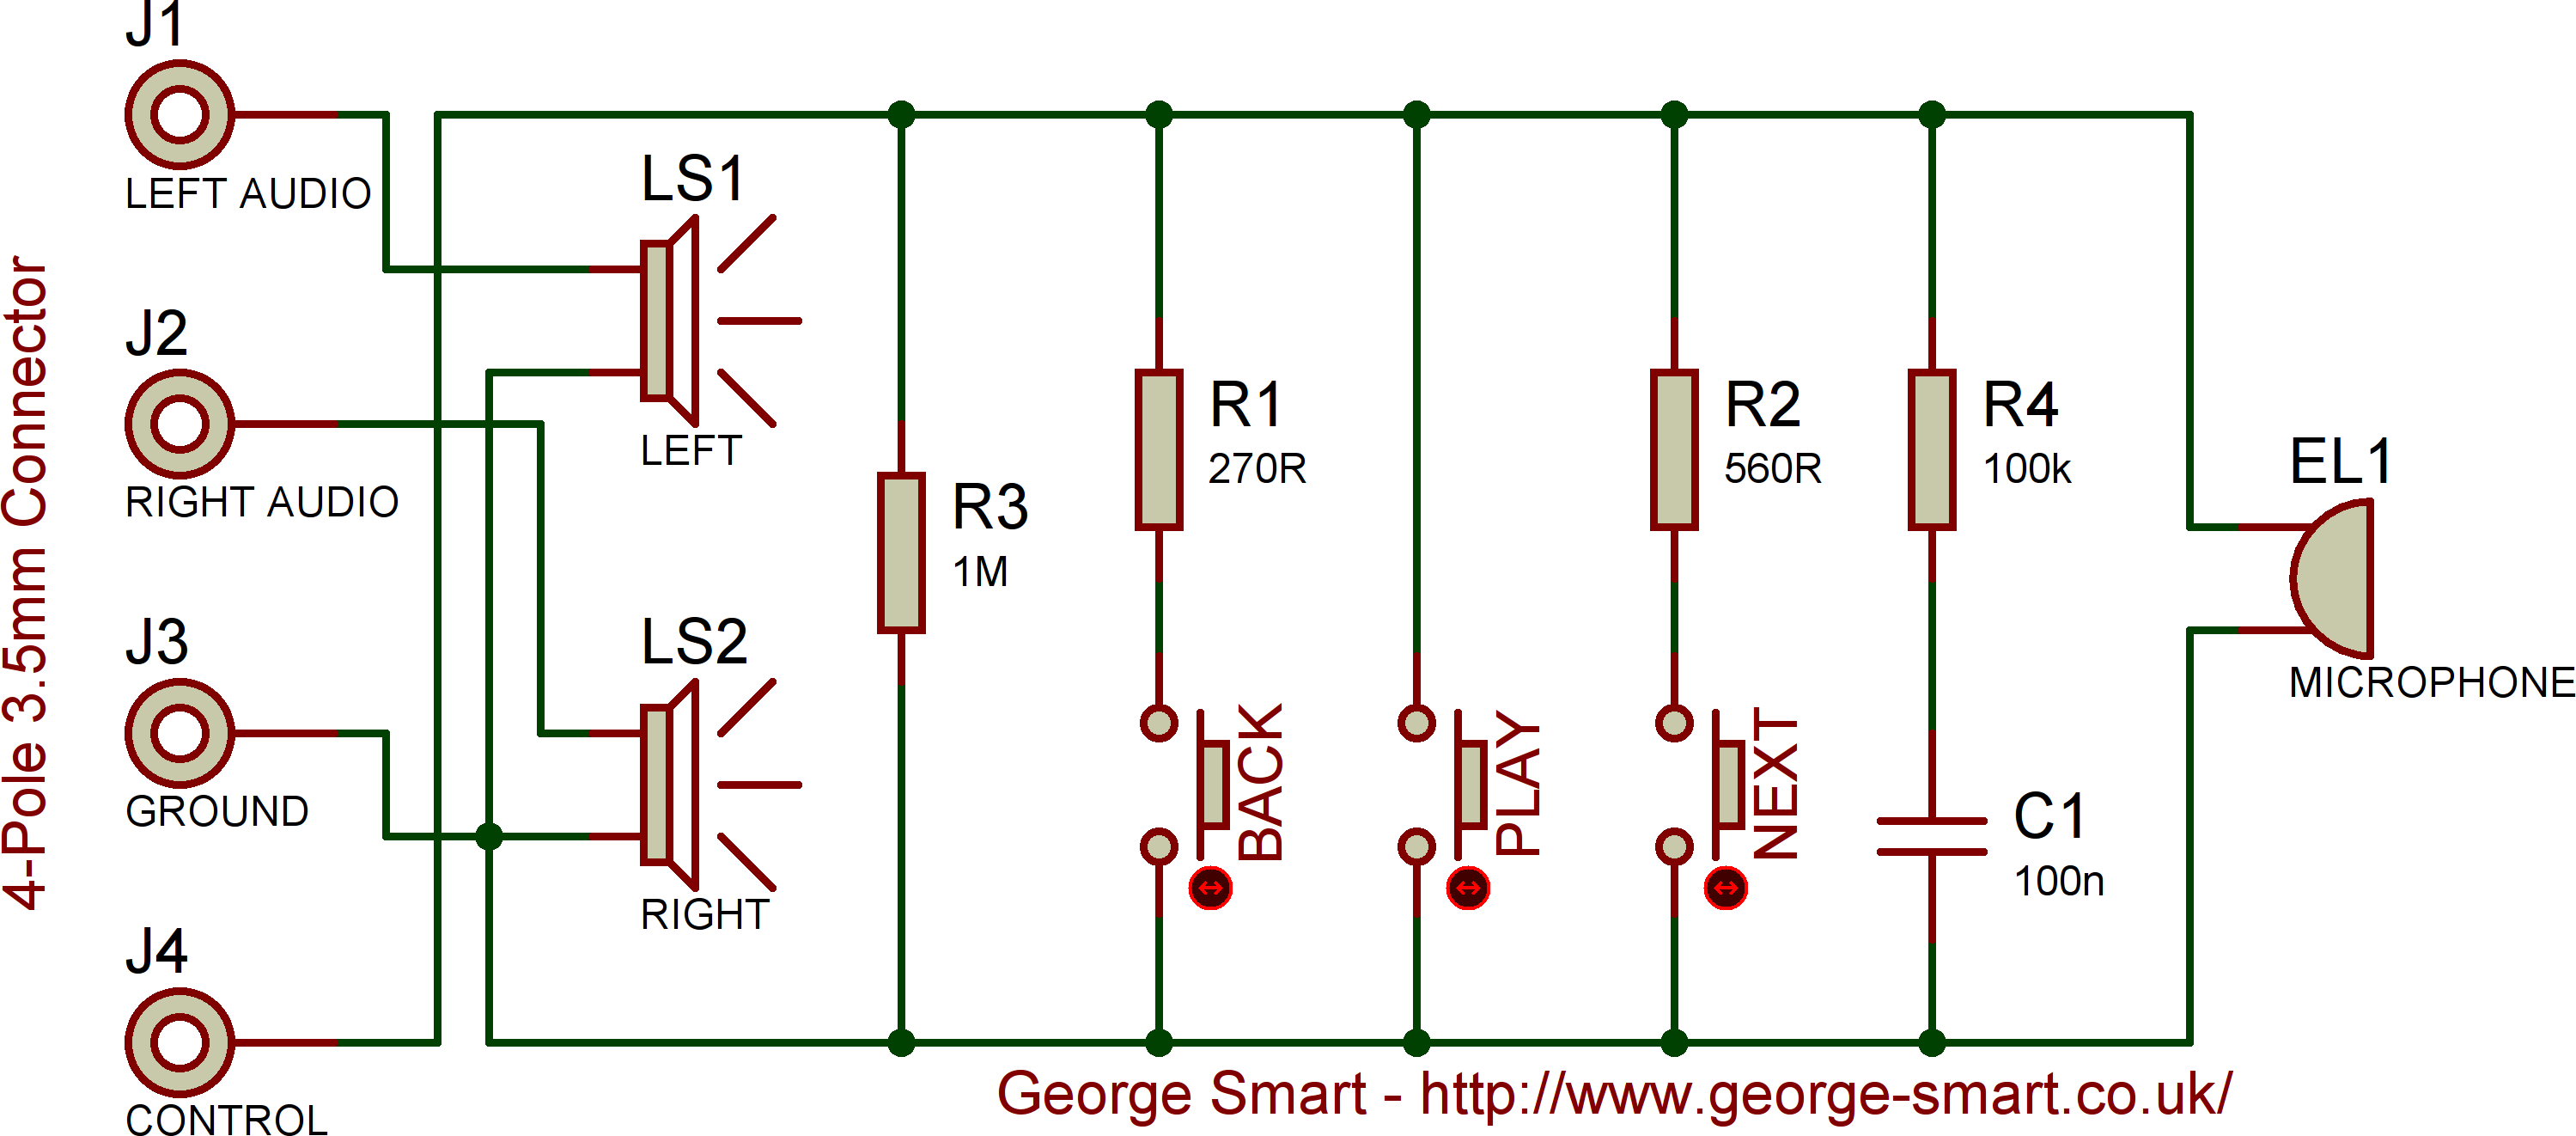 HTCHeadsetSchematic htc headphones george smart m1geo samsung headset wiring diagram at mifinder.co